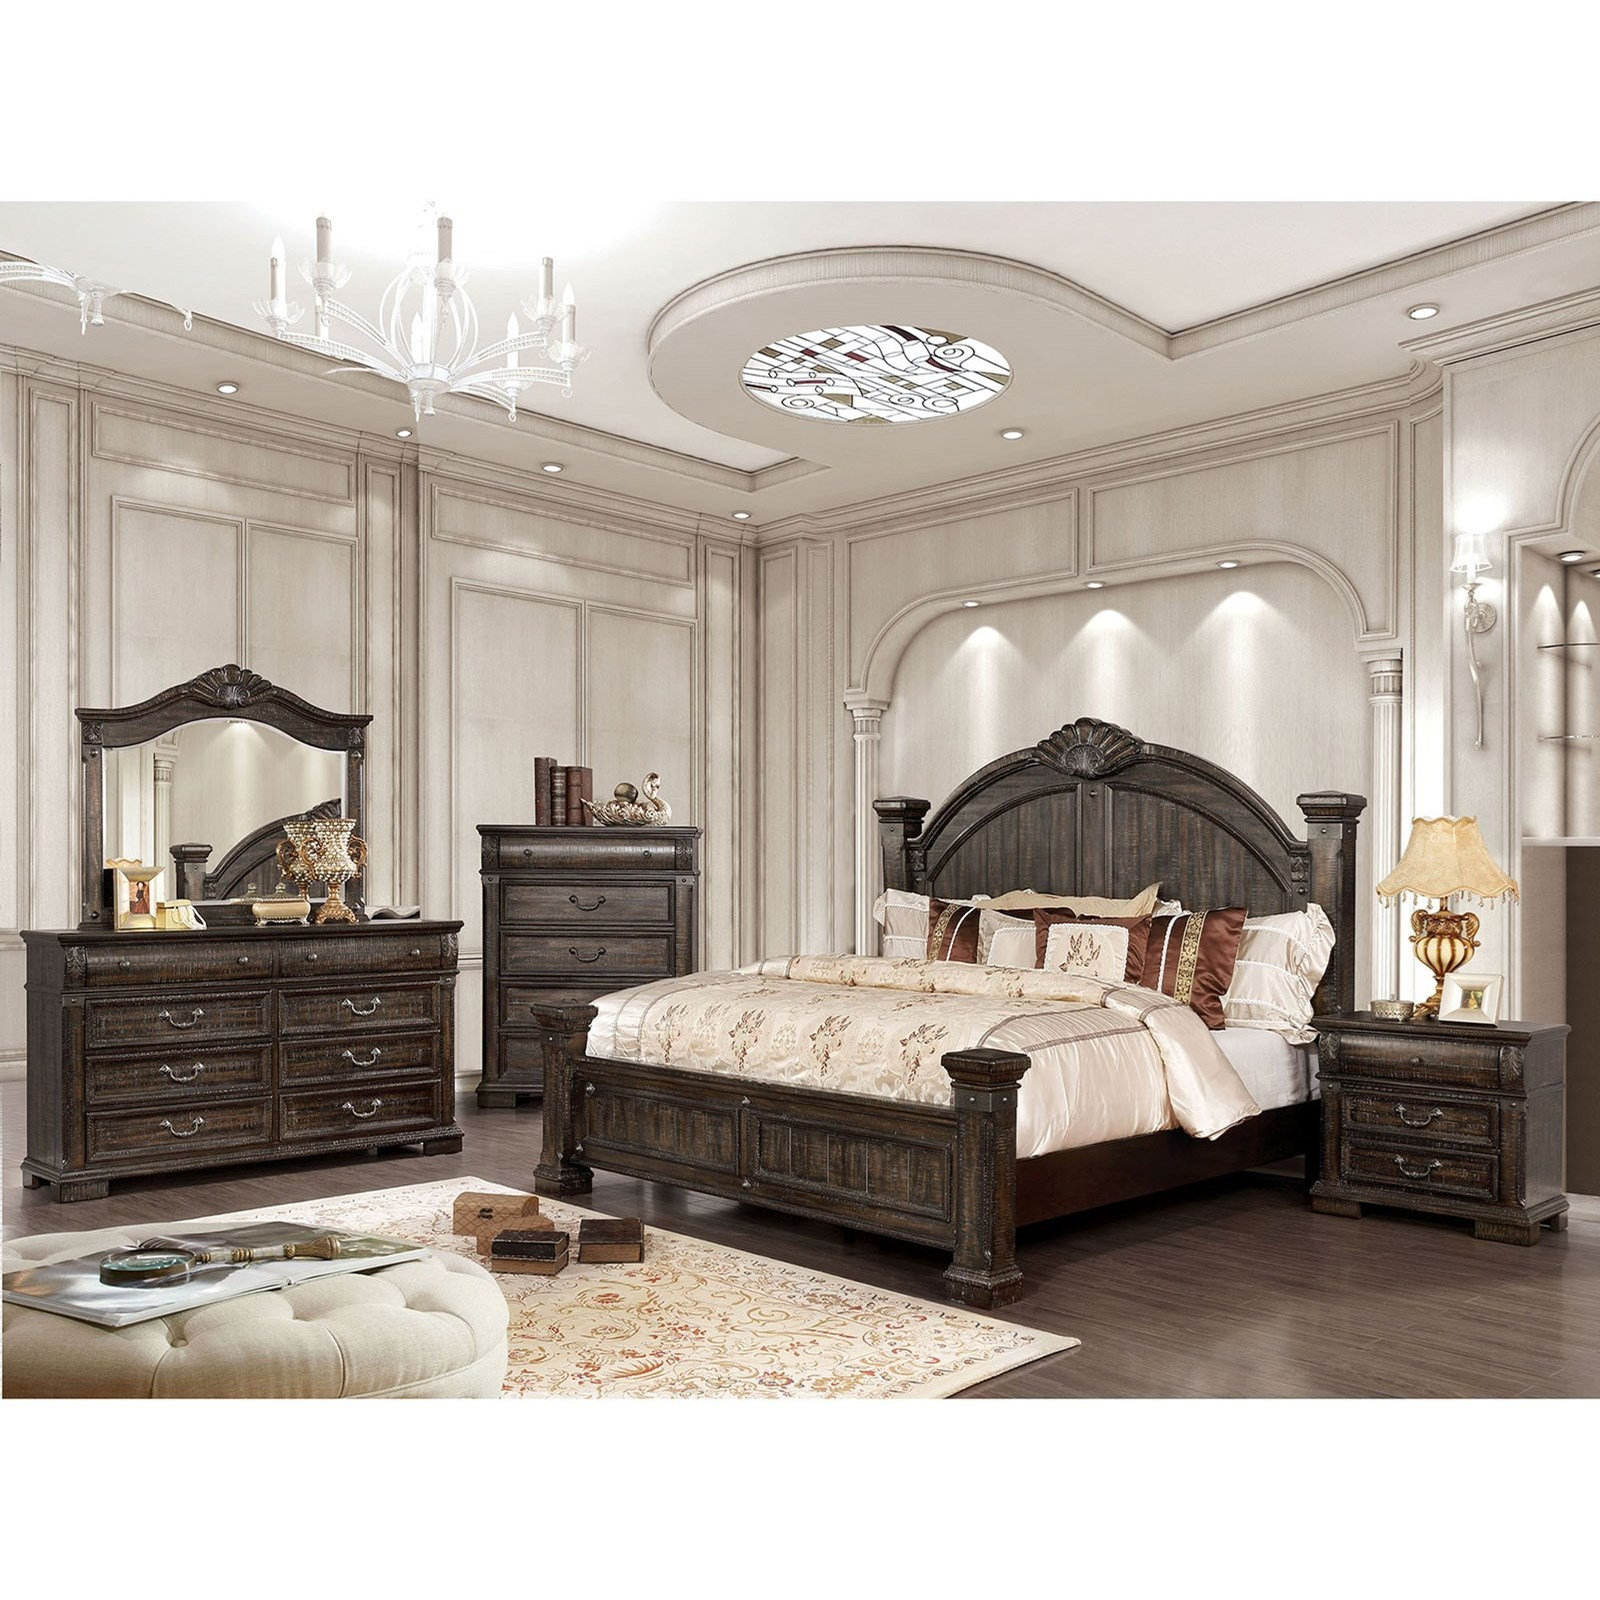 Genevieve Queen Bedroom Group at Household Furniture